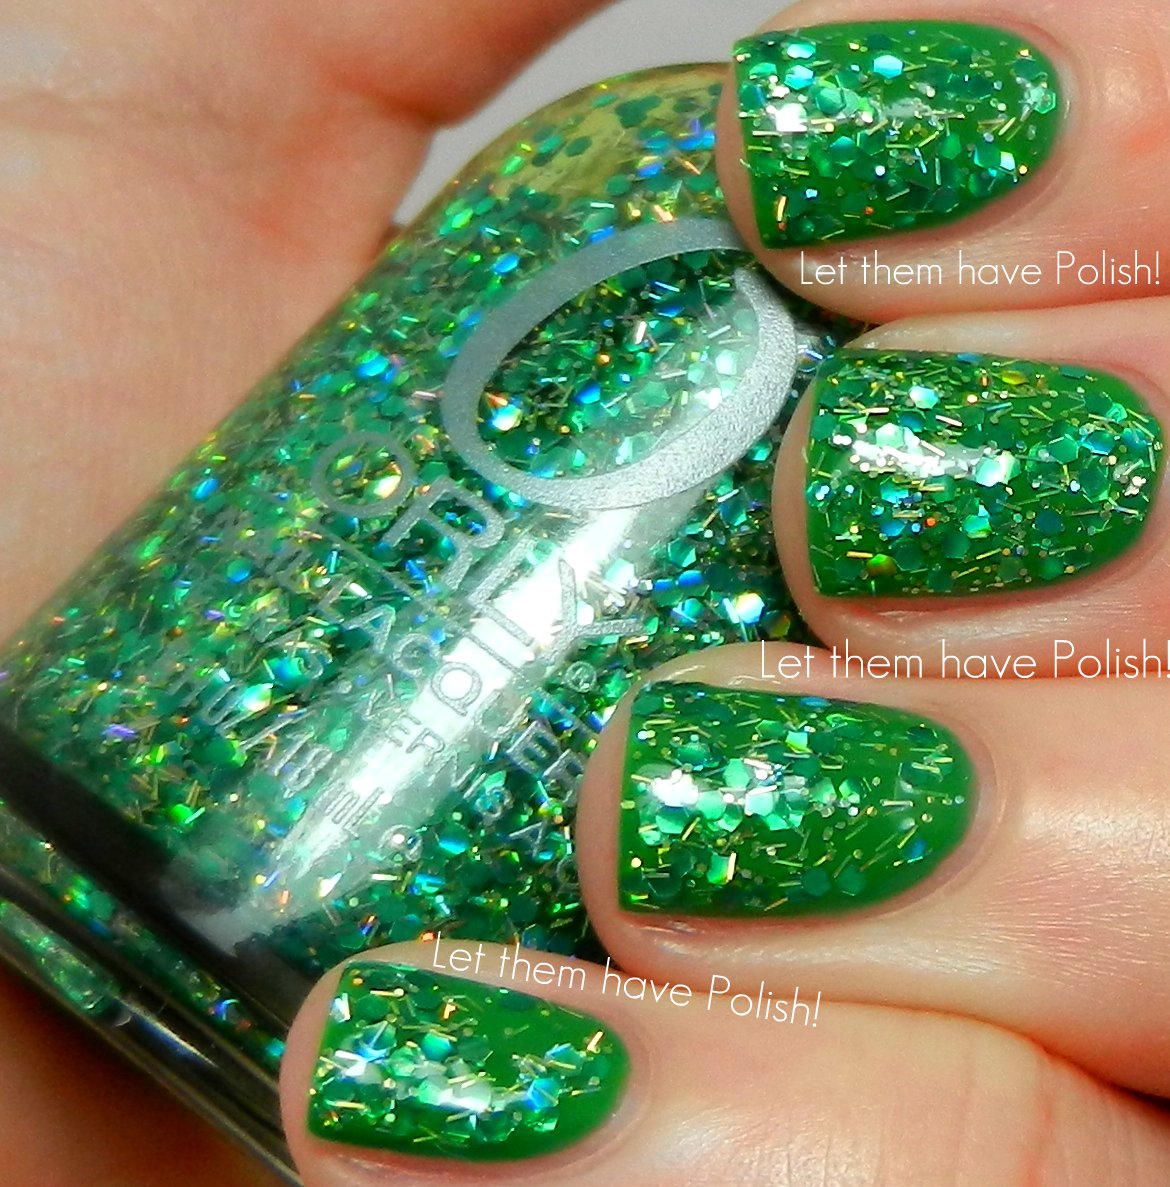 My Picks from the Orly Flash Glam FX Collection